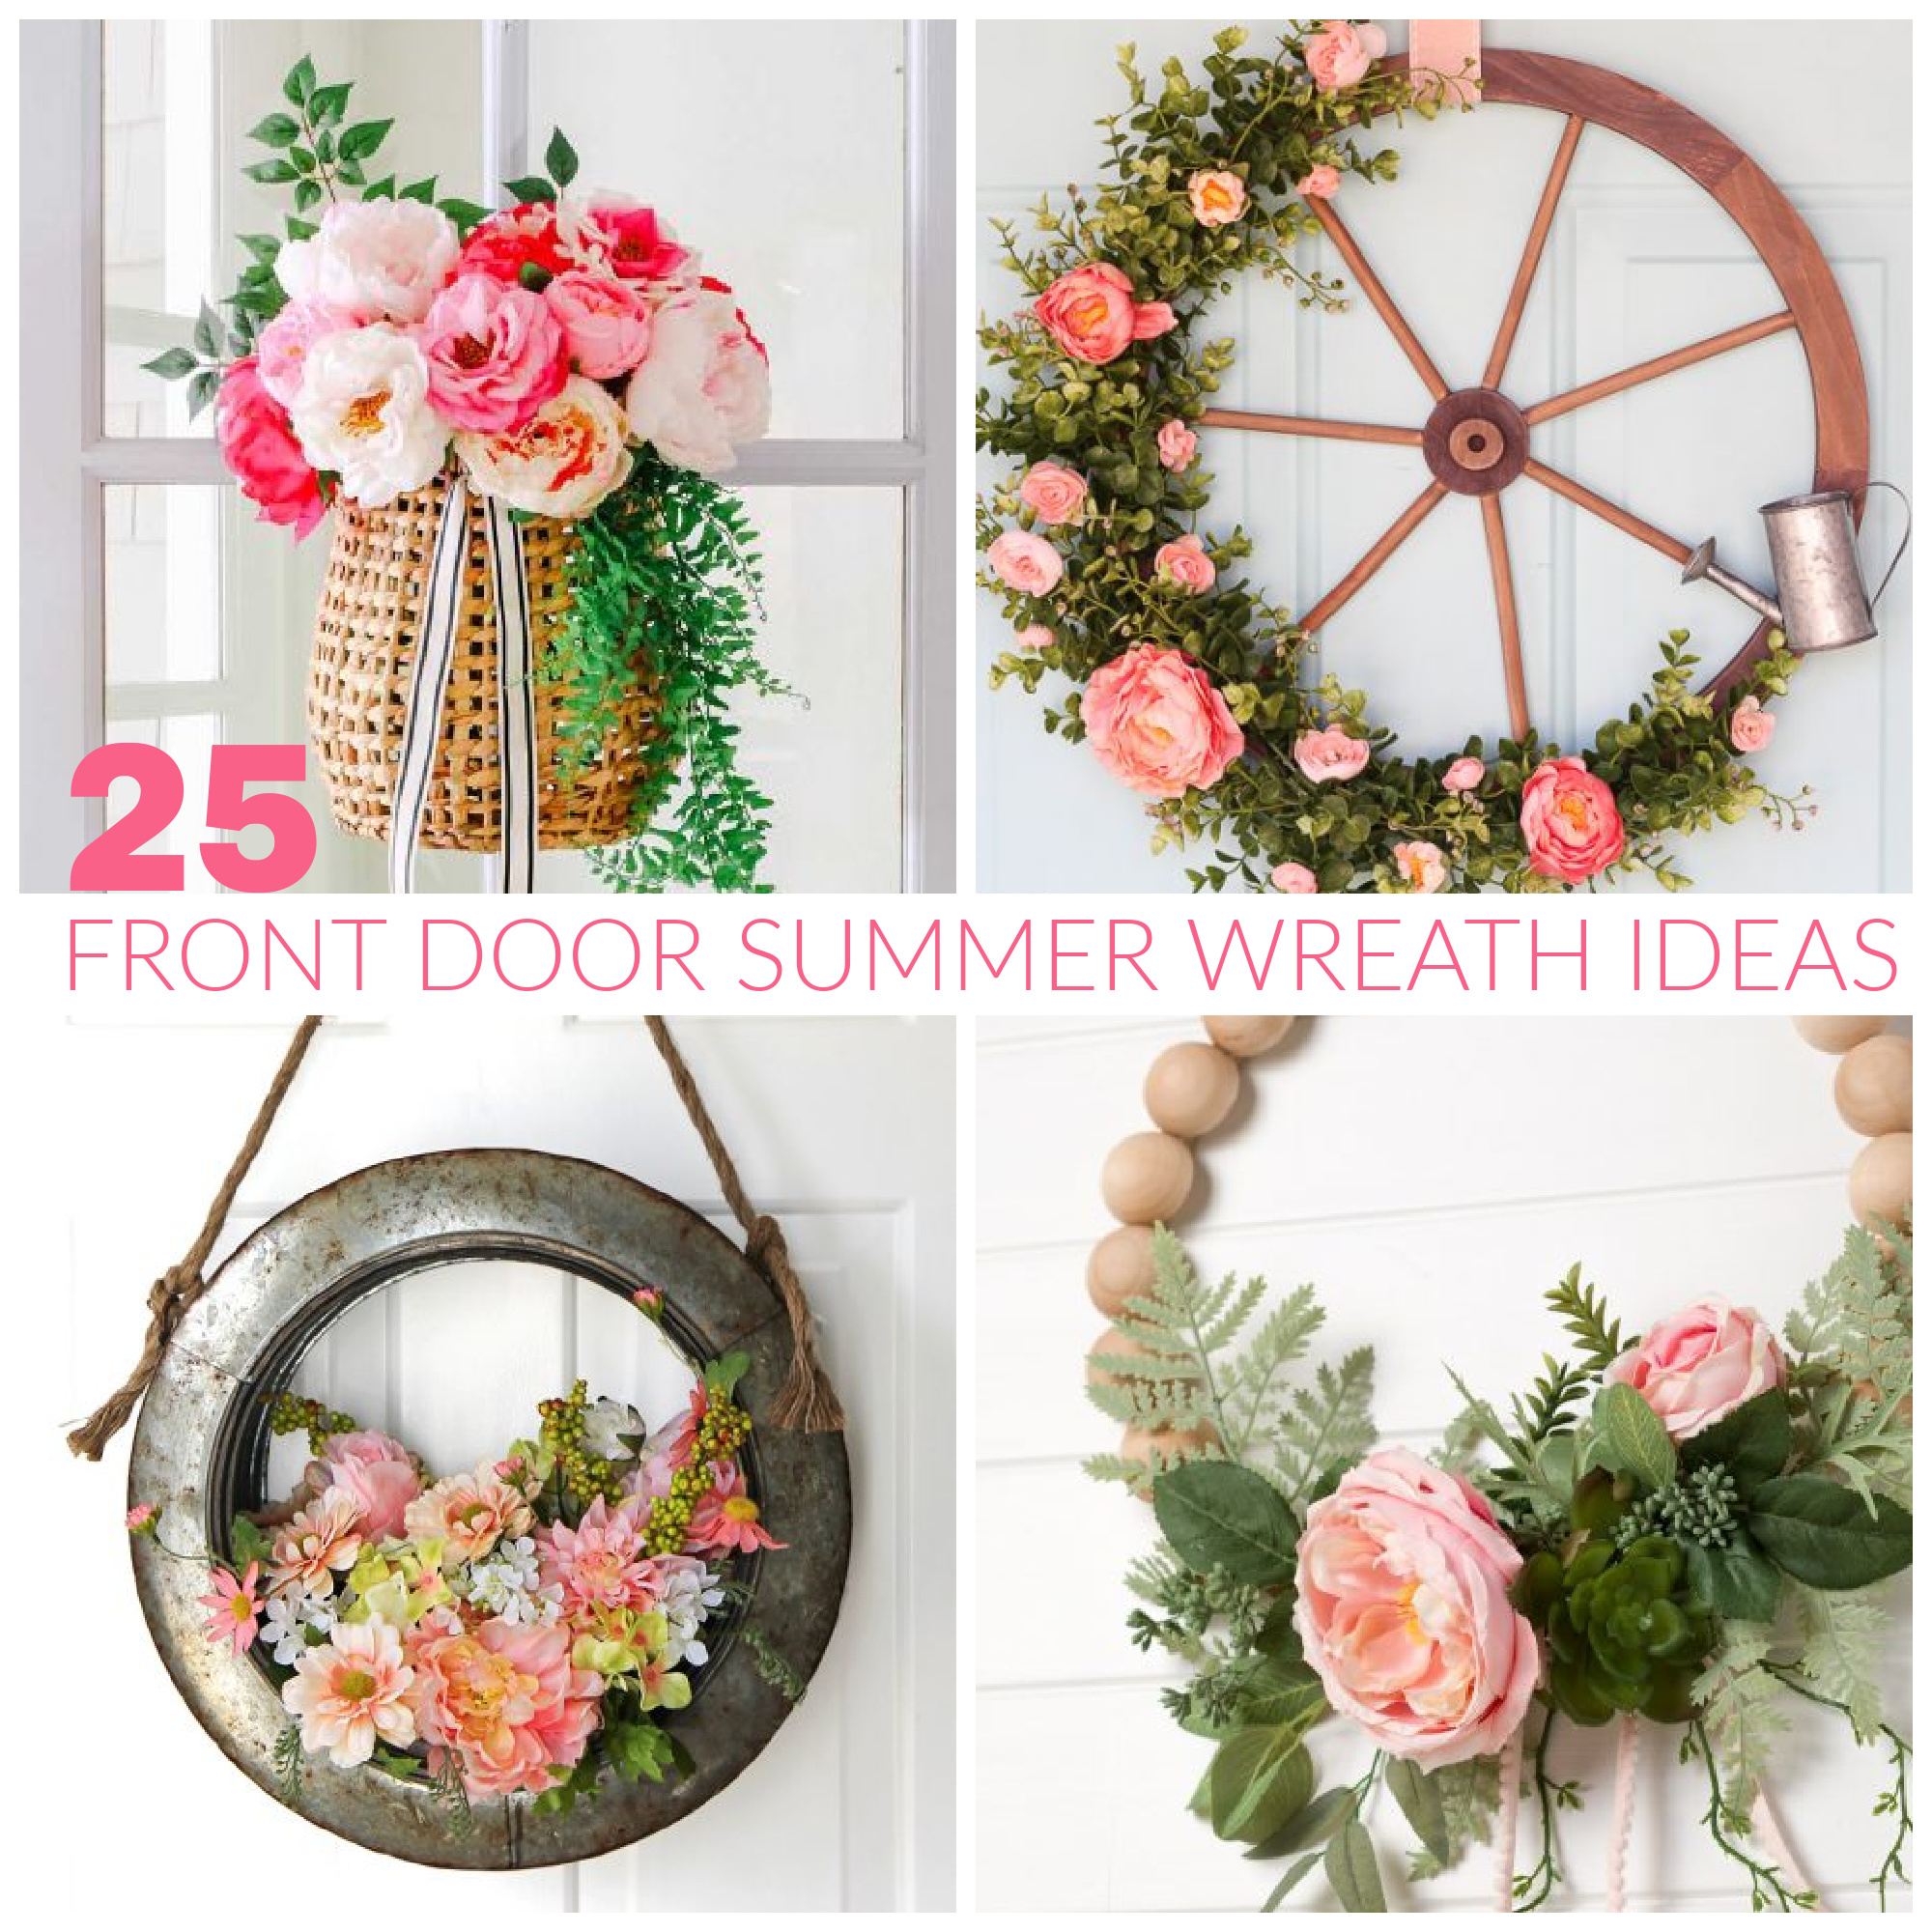 25 Front Door Summer Wreath Ideas